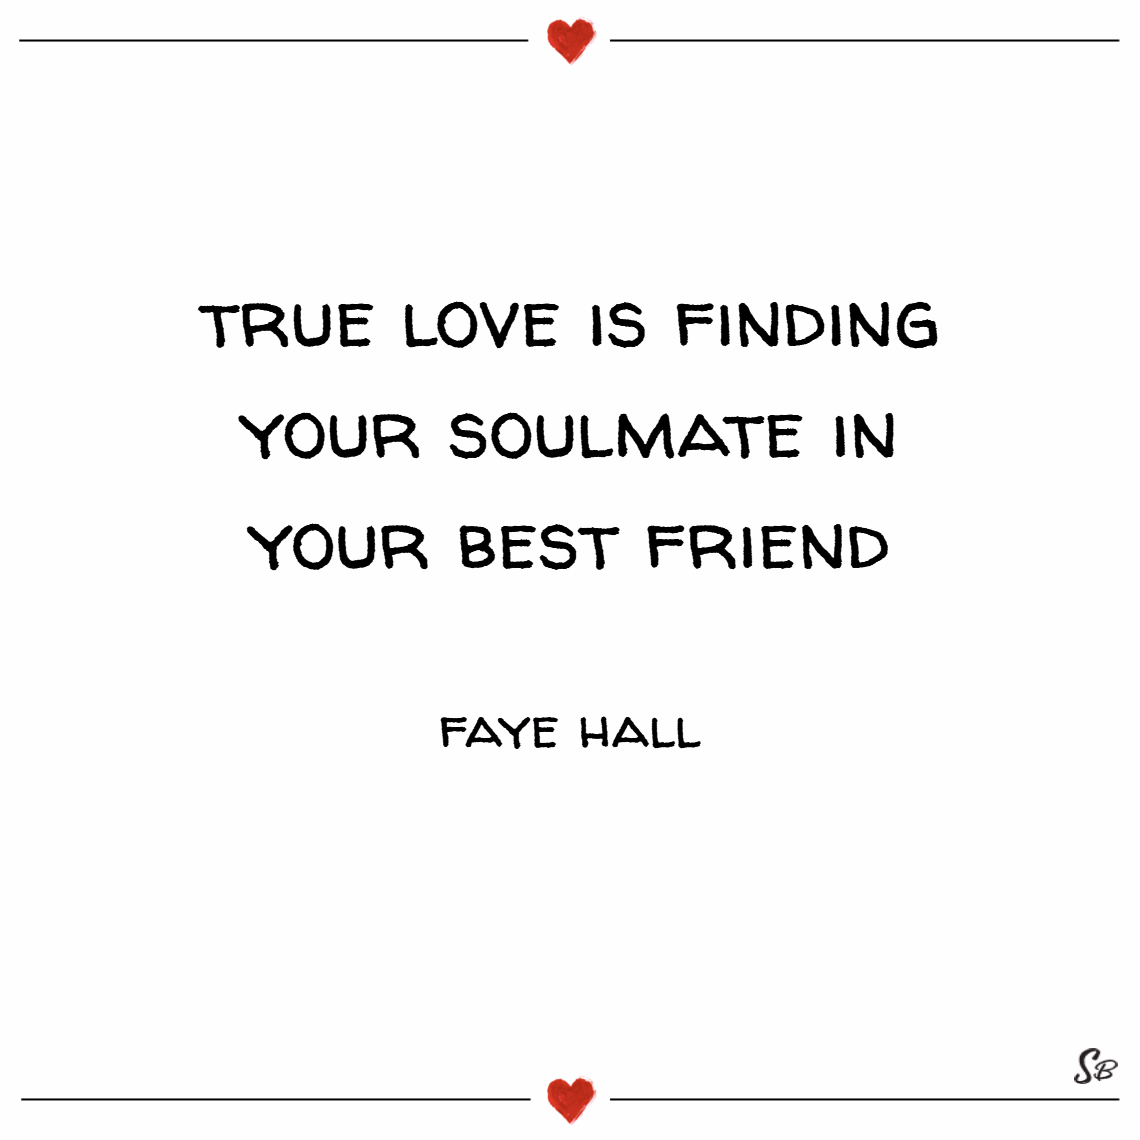 Best Friend Love Quotes Cool 31 Soulmate Quotes On Love Life And Connection  Spirit Button